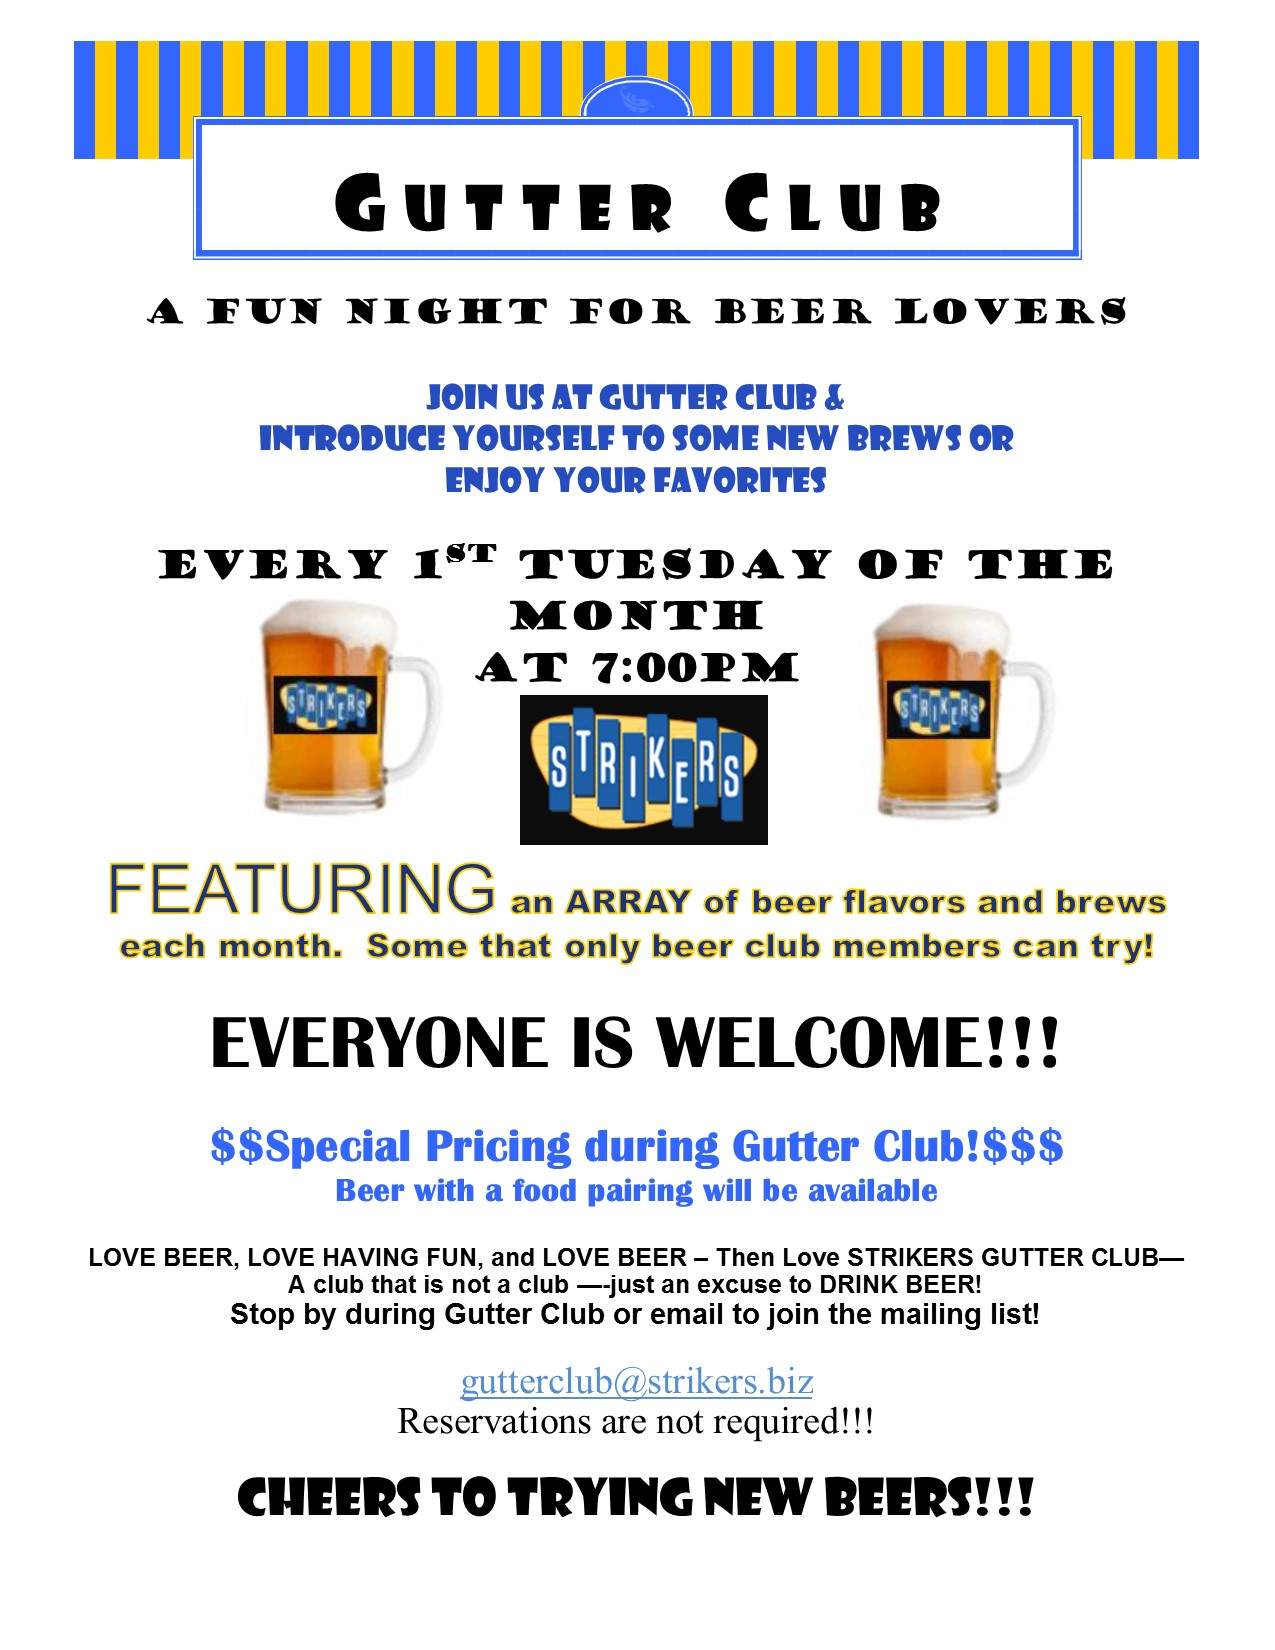 Gutter Club Strikers Bowling West Seneca Ny